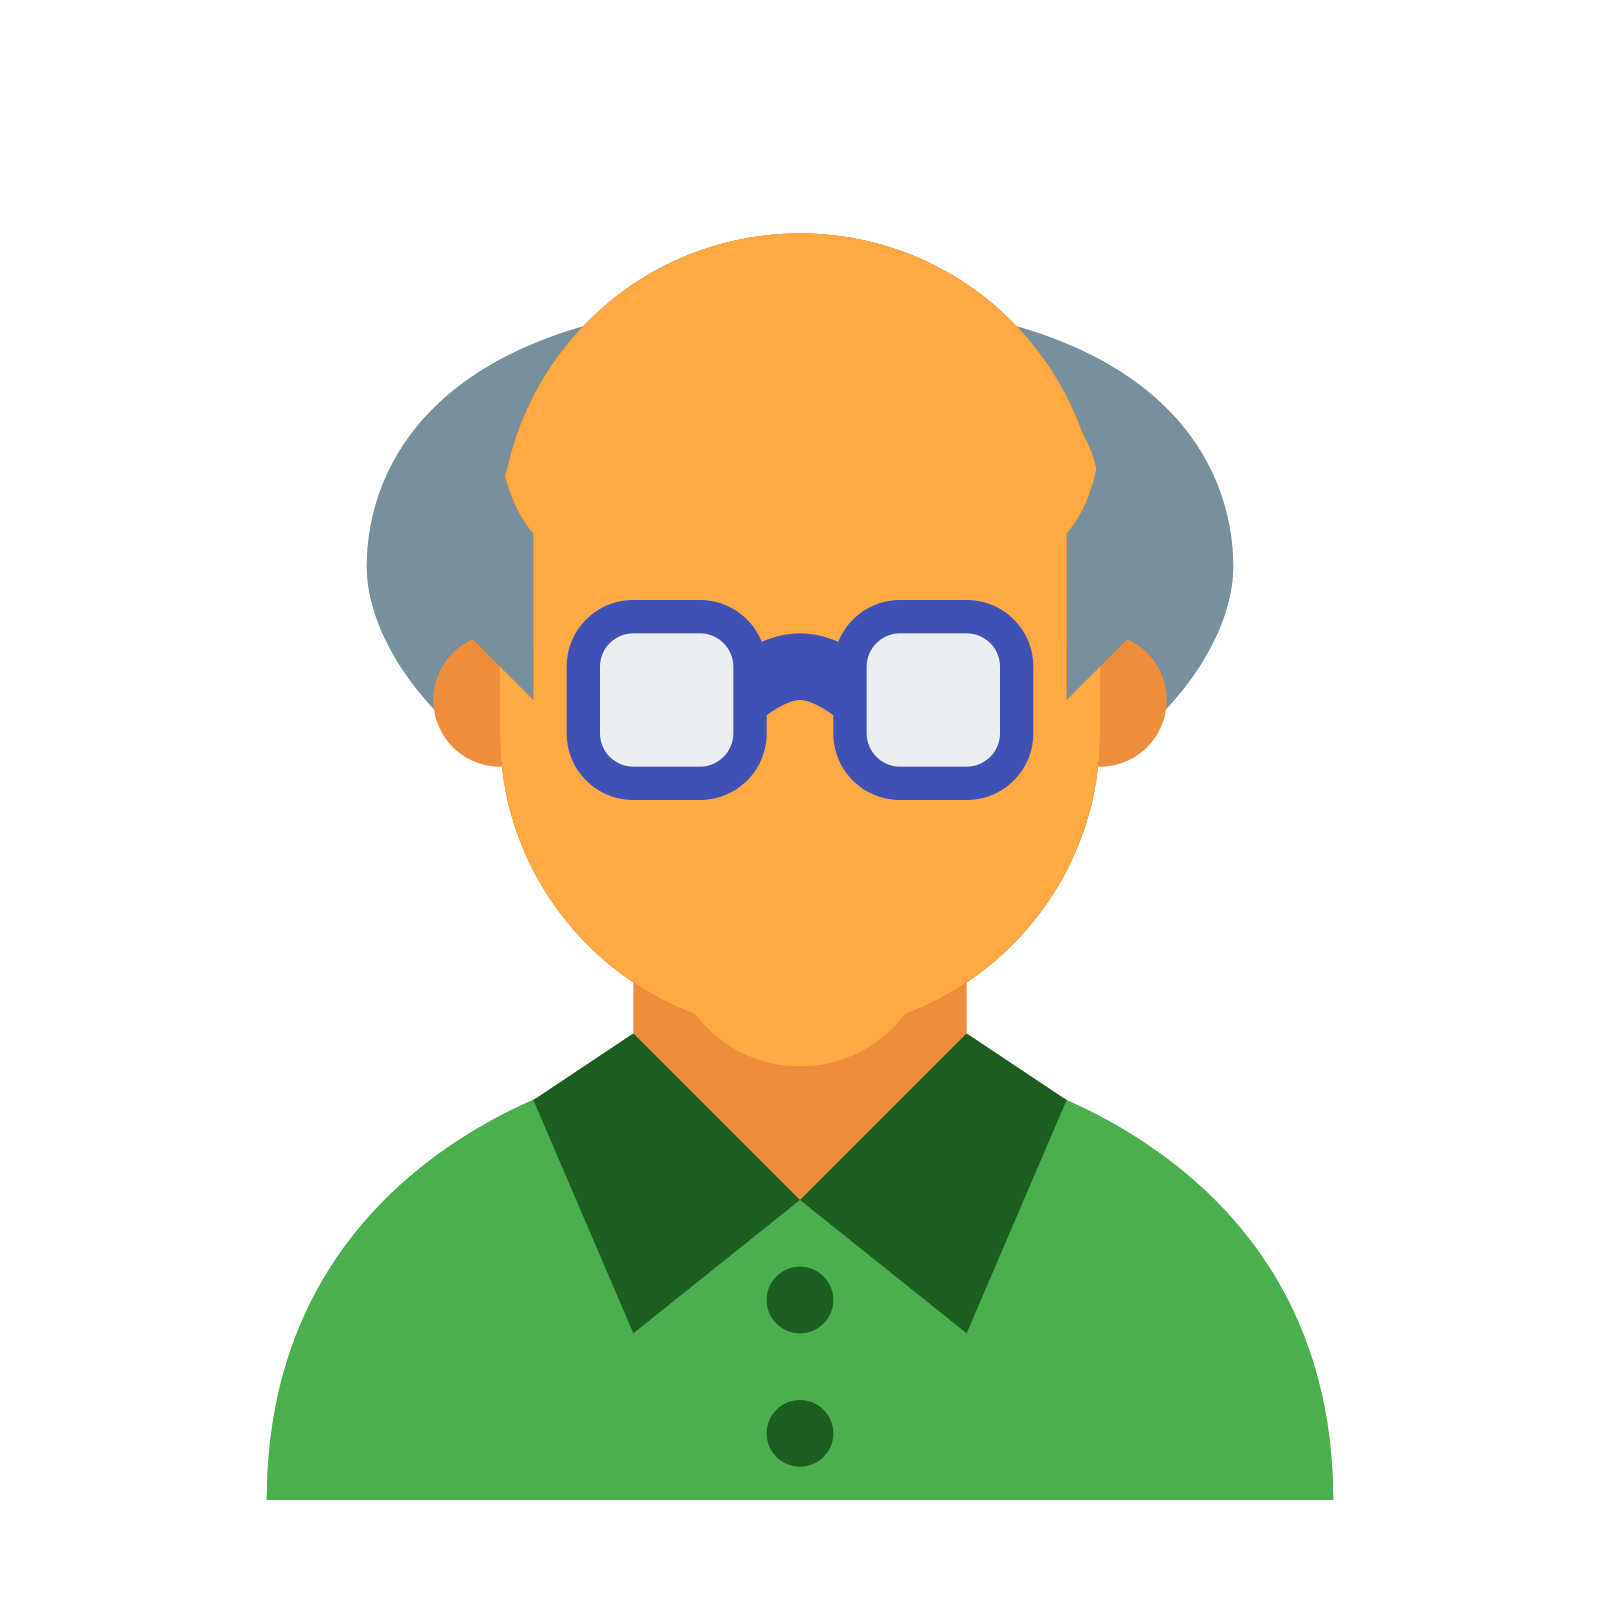 Senior icon free download. Old clipart aged person